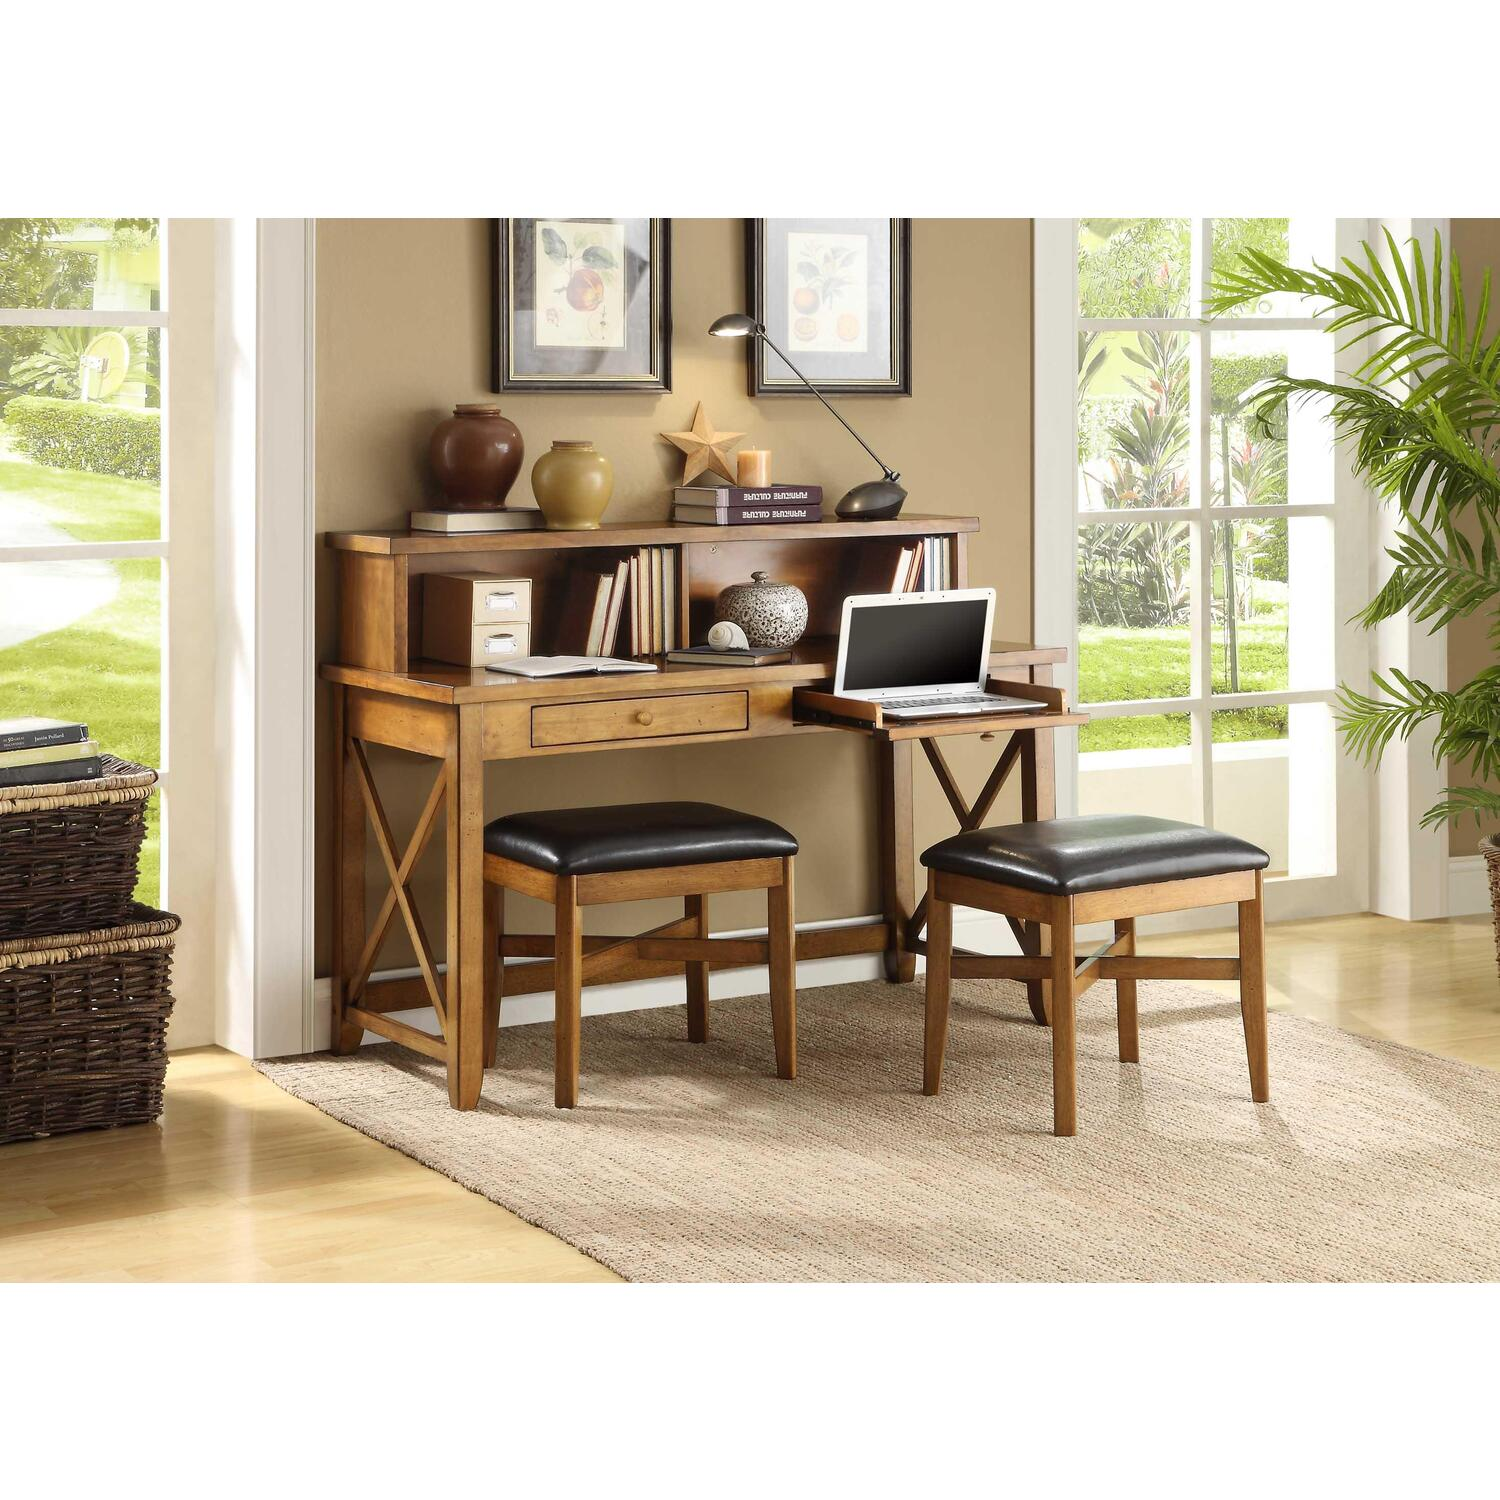 Fairport 54 Writing Desk Hutch With 2 Stools